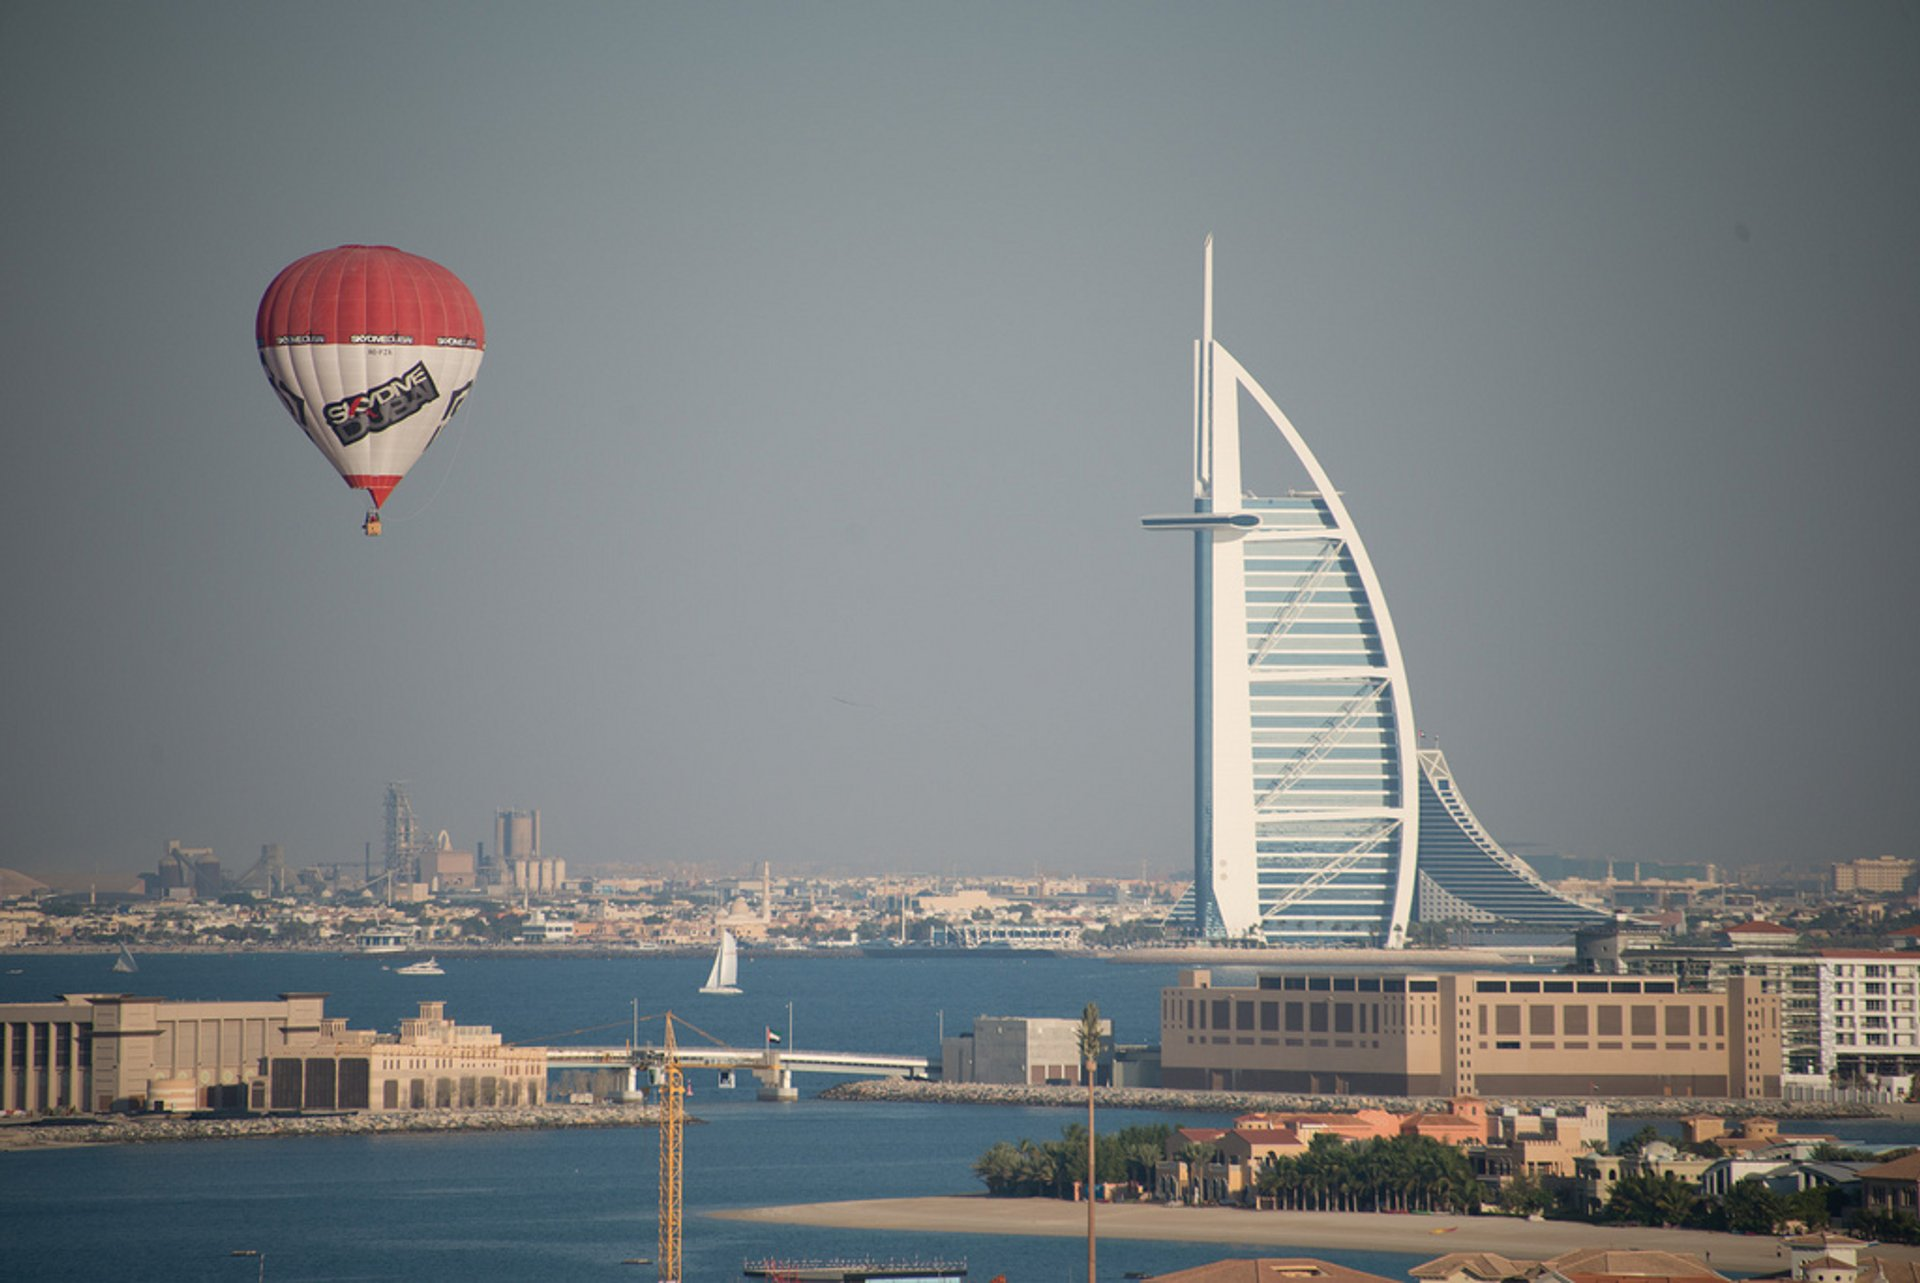 Ballooning in Dubai 2020 - Best Time